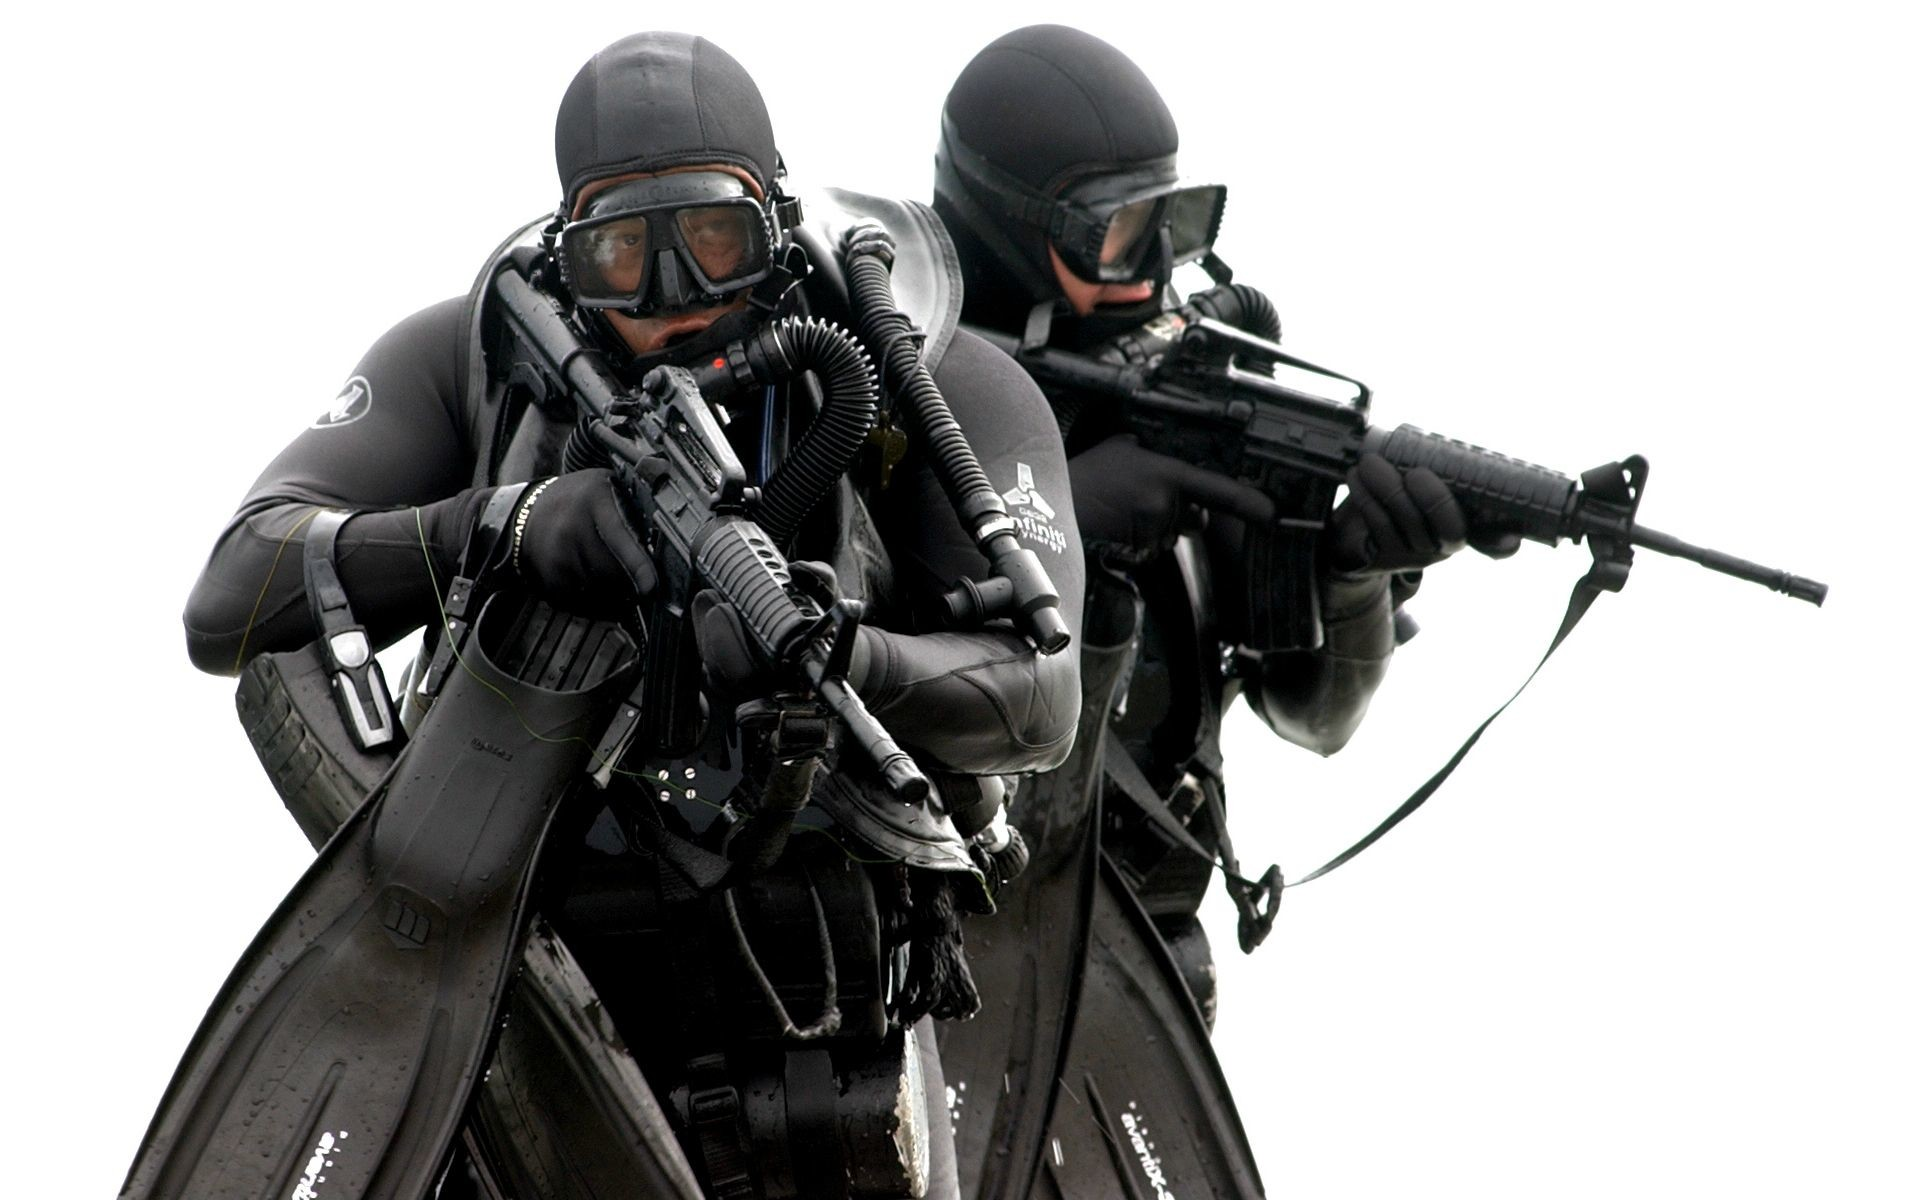 Us Naval Seal   navy seals One strike One Kill! US Navy Seals Bad to